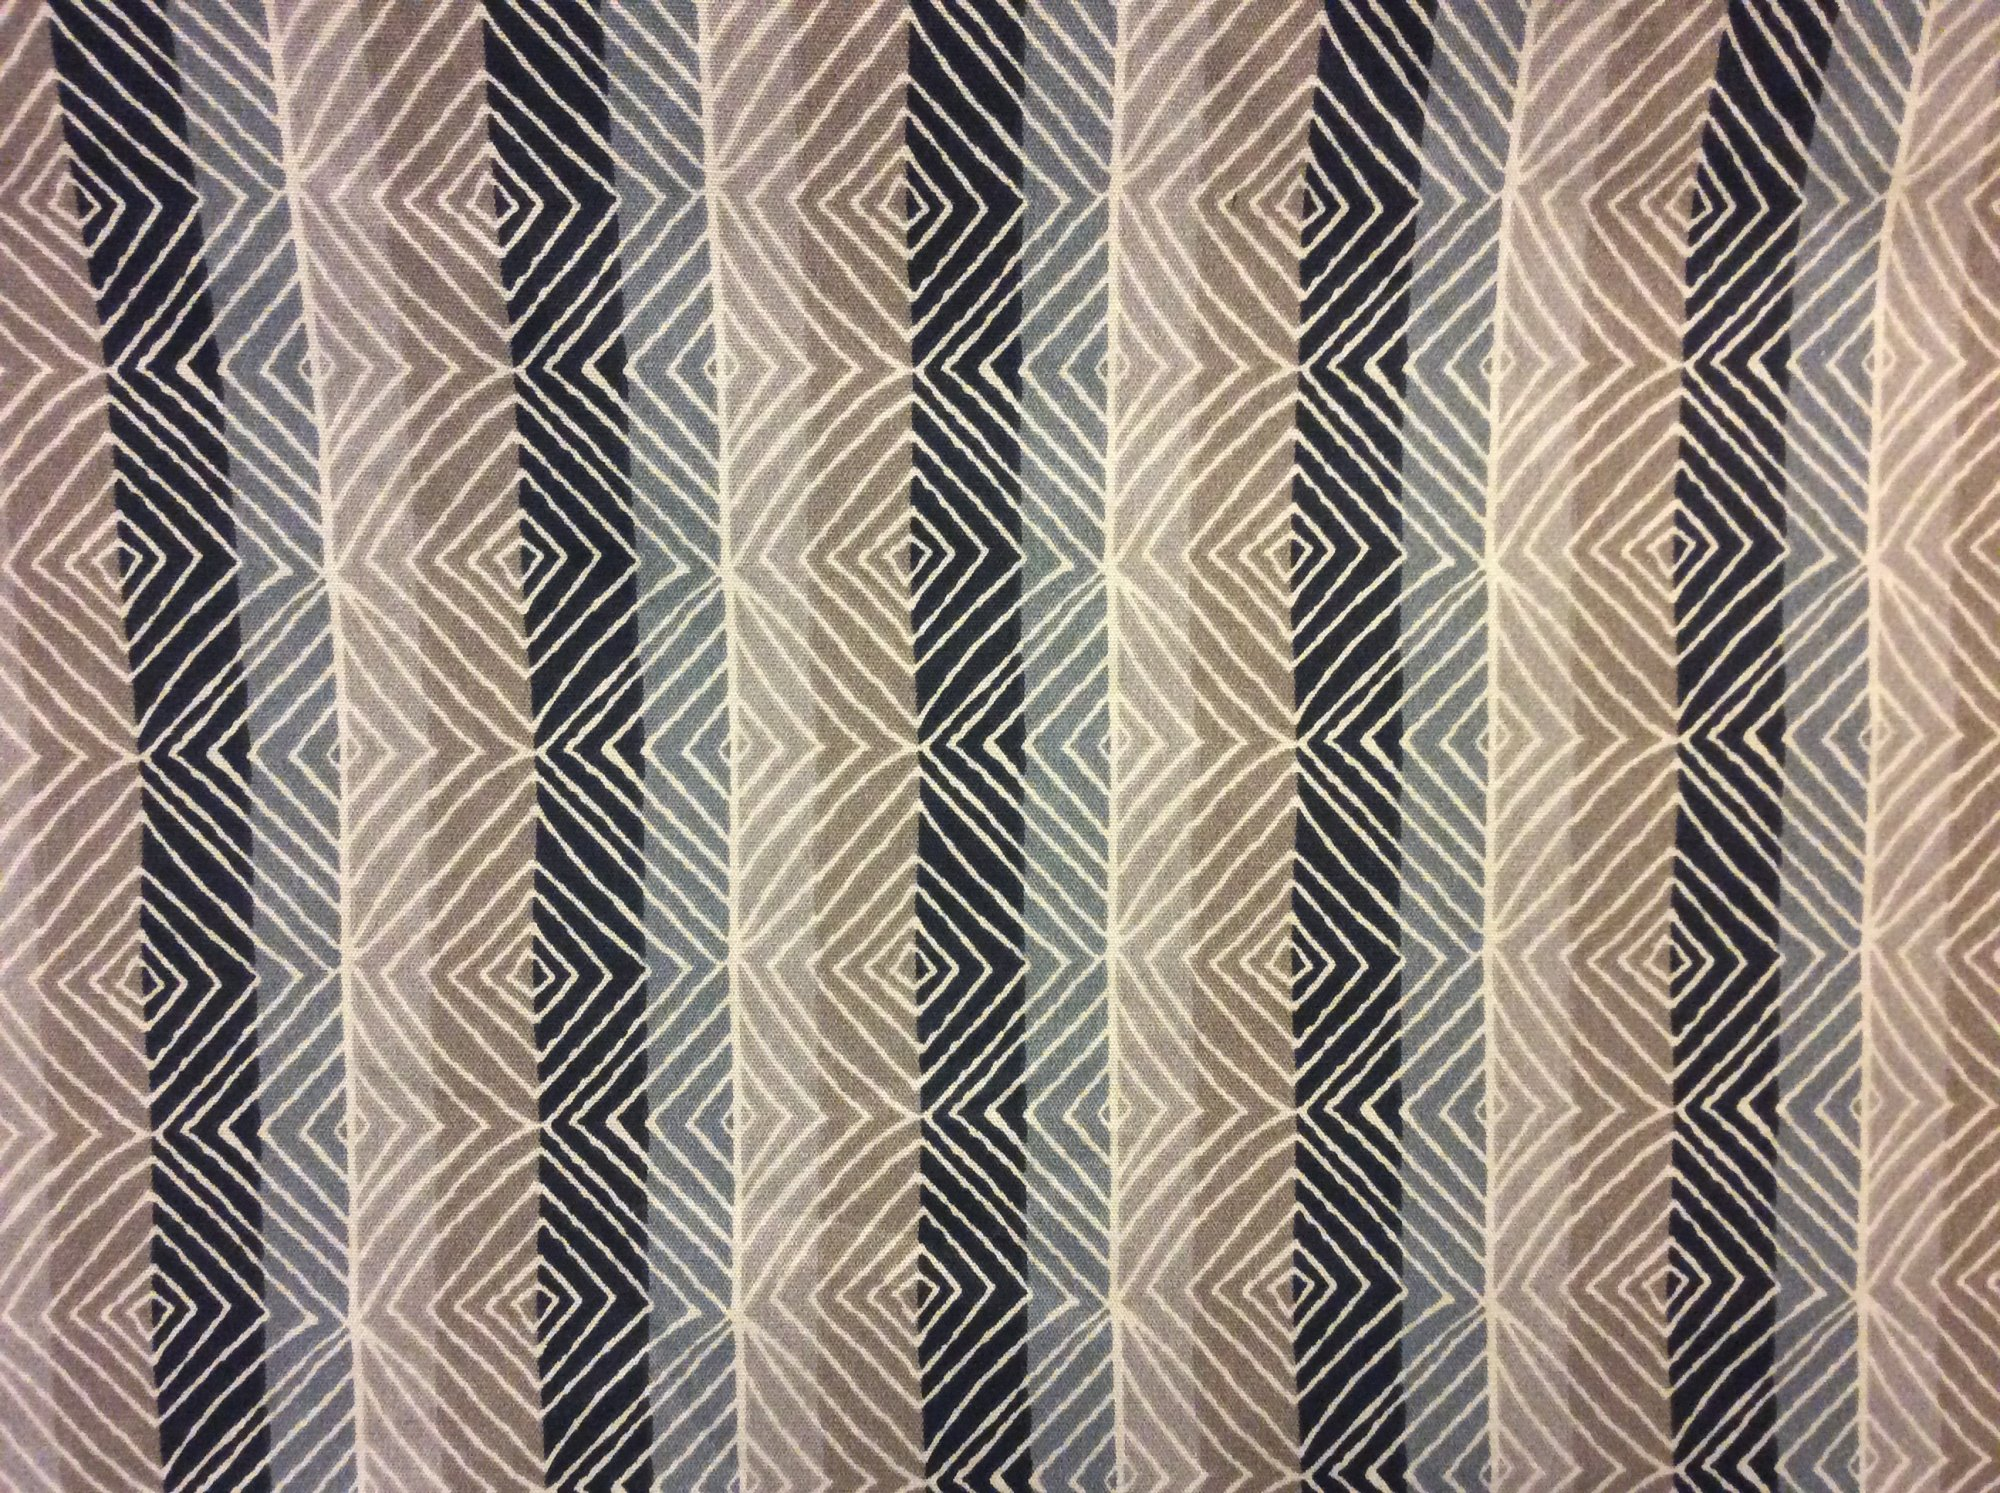 Ikat Stripe Print Famous Maker Acrylic Soft Brown Black Taupe Gray Tan Diamond Pattern Outdoor Fabric 584